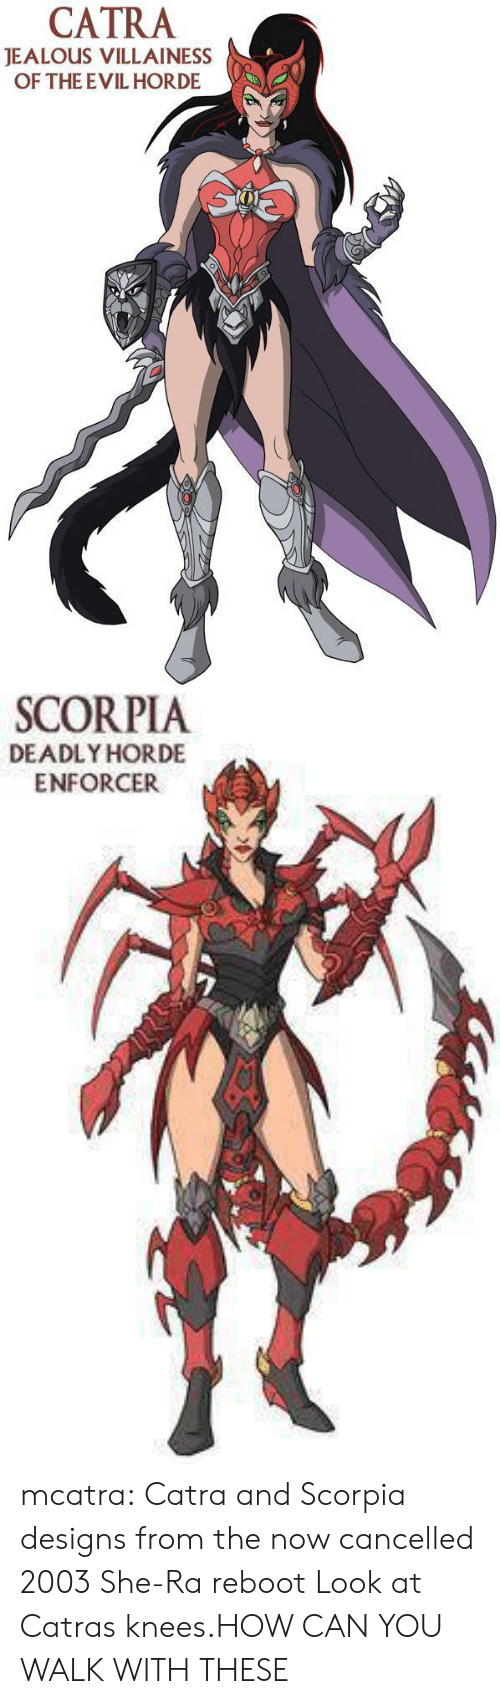 Enforcer: CATRA  JEALOUS VILLAINESS  OF THE EVIL HORDE   SCORPIA  DEADLY HORDE  ENFORCER mcatra:  Catra and Scorpia designs from the now cancelled 2003 She-Ra reboot  Look at Catras knees.HOW CAN YOU WALK WITH THESE